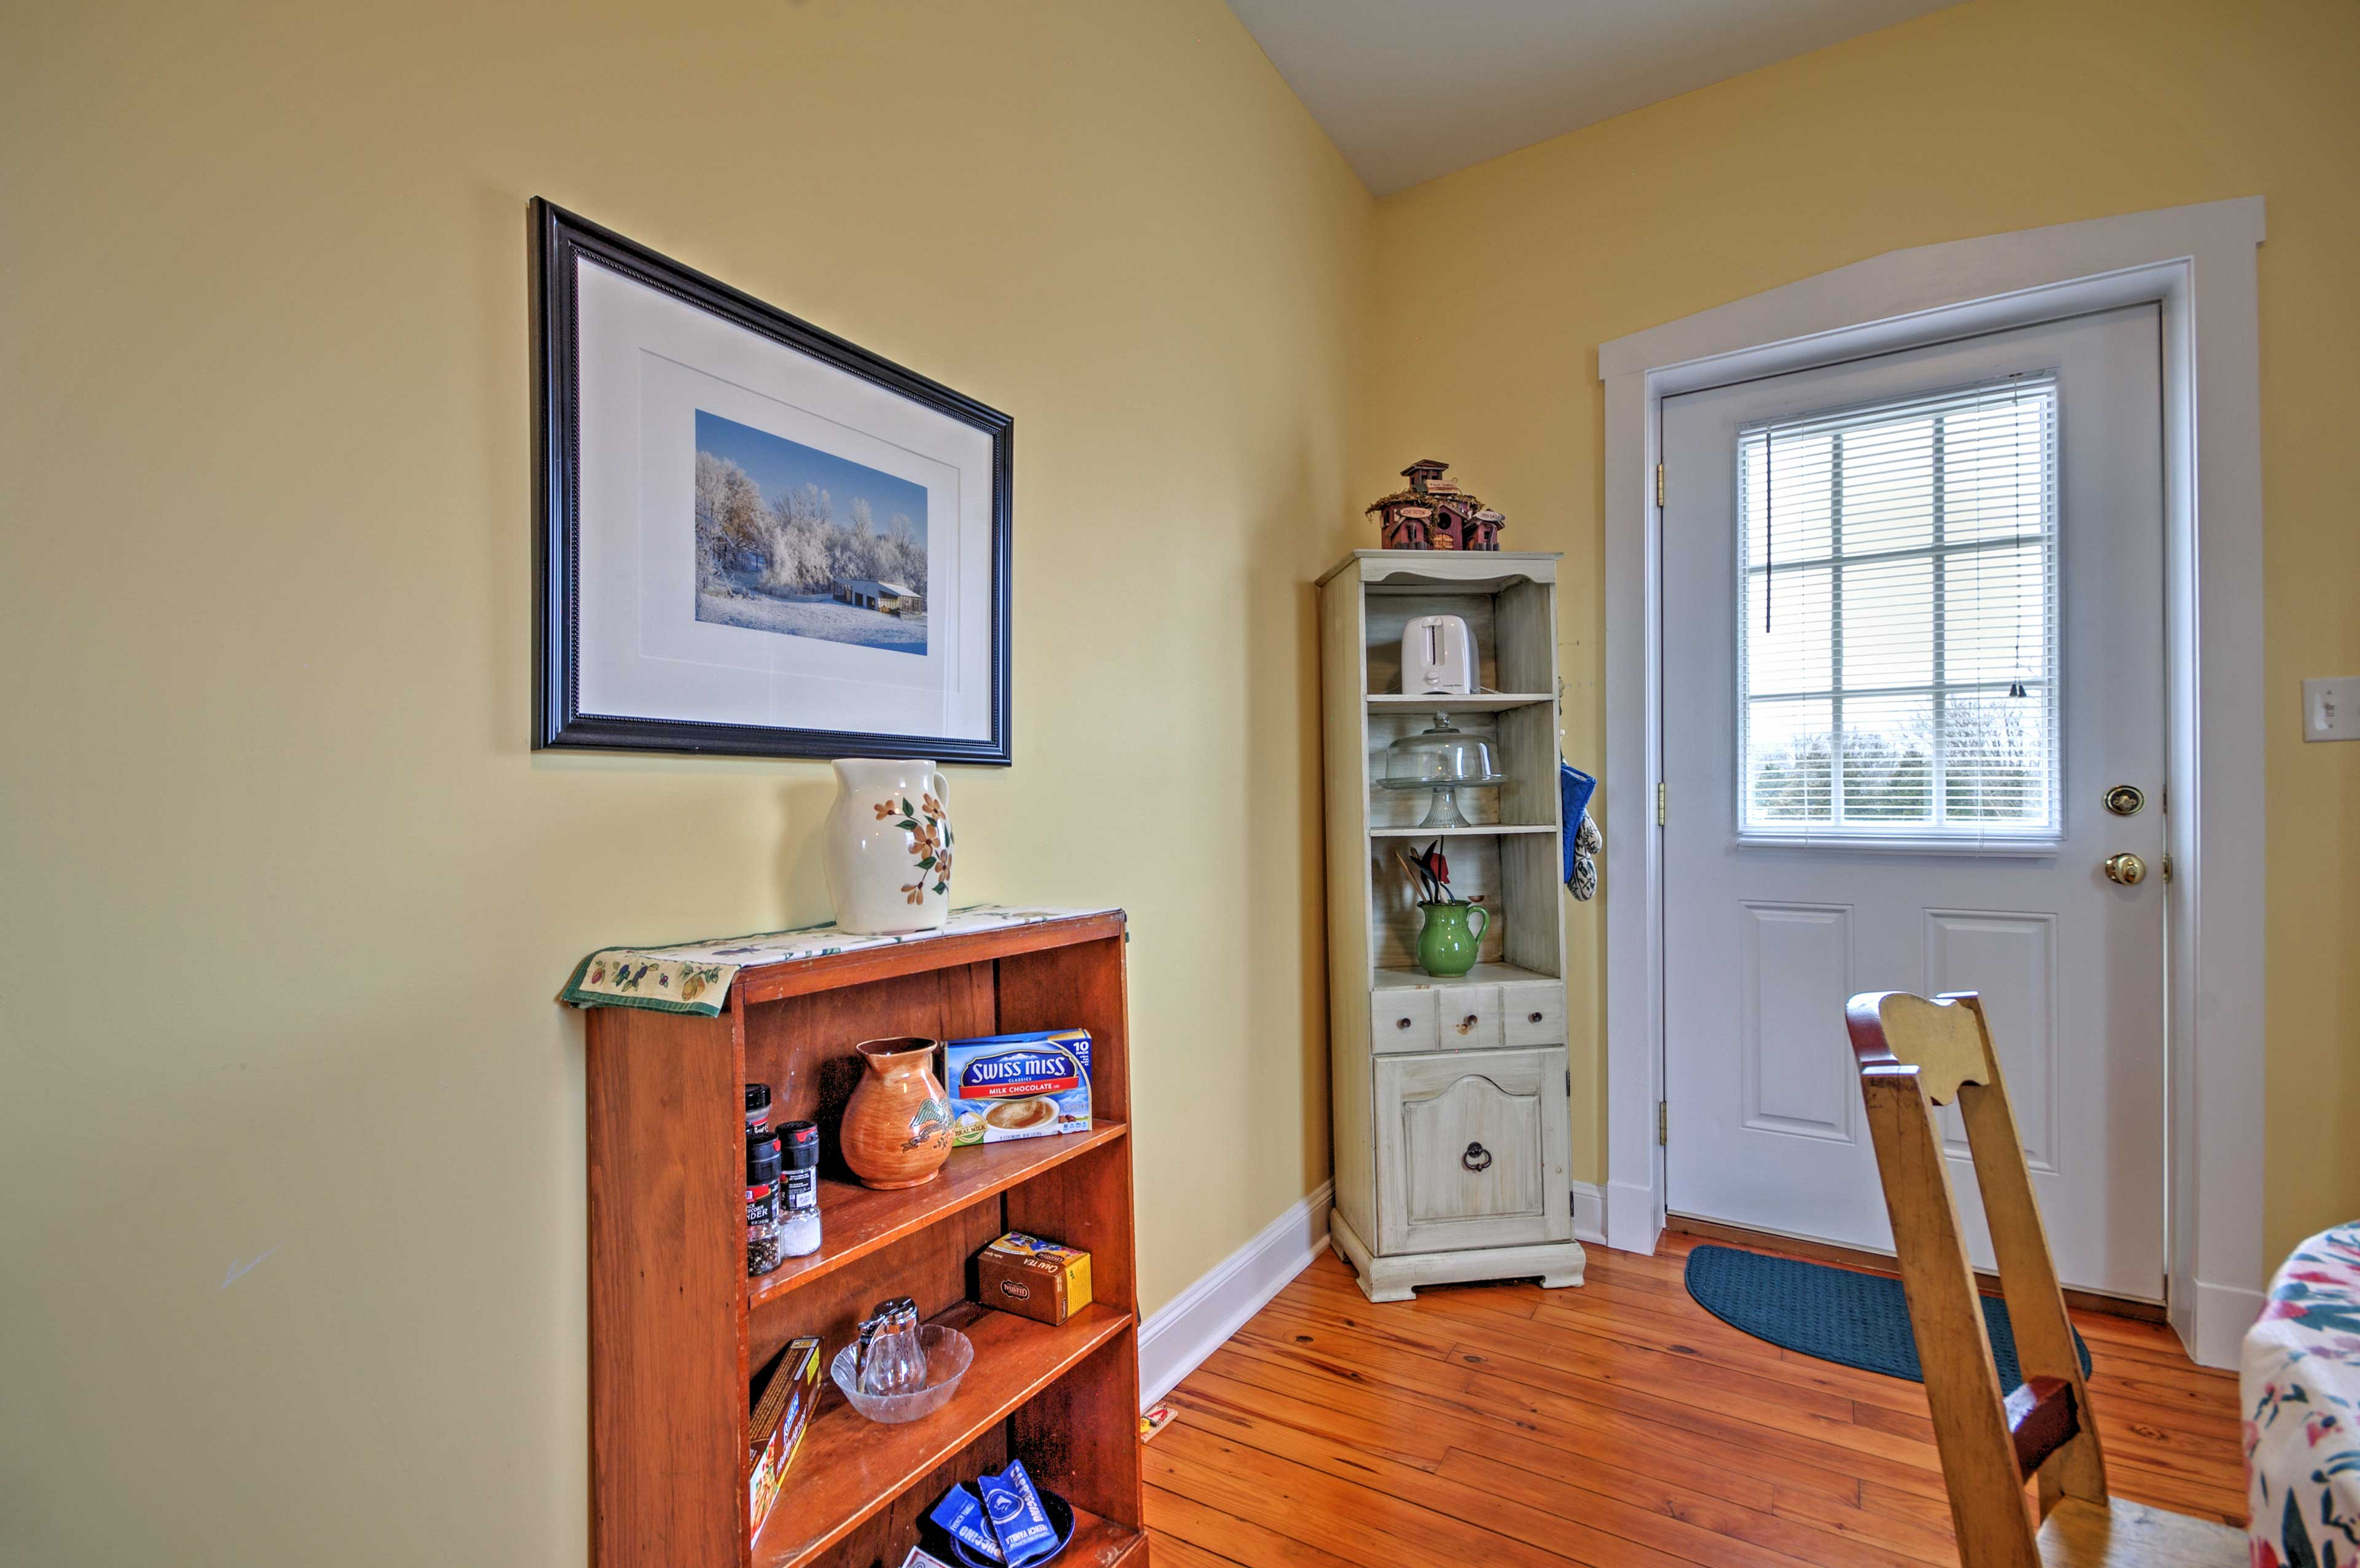 You'll love returning home to this charming living space at the end of each day.